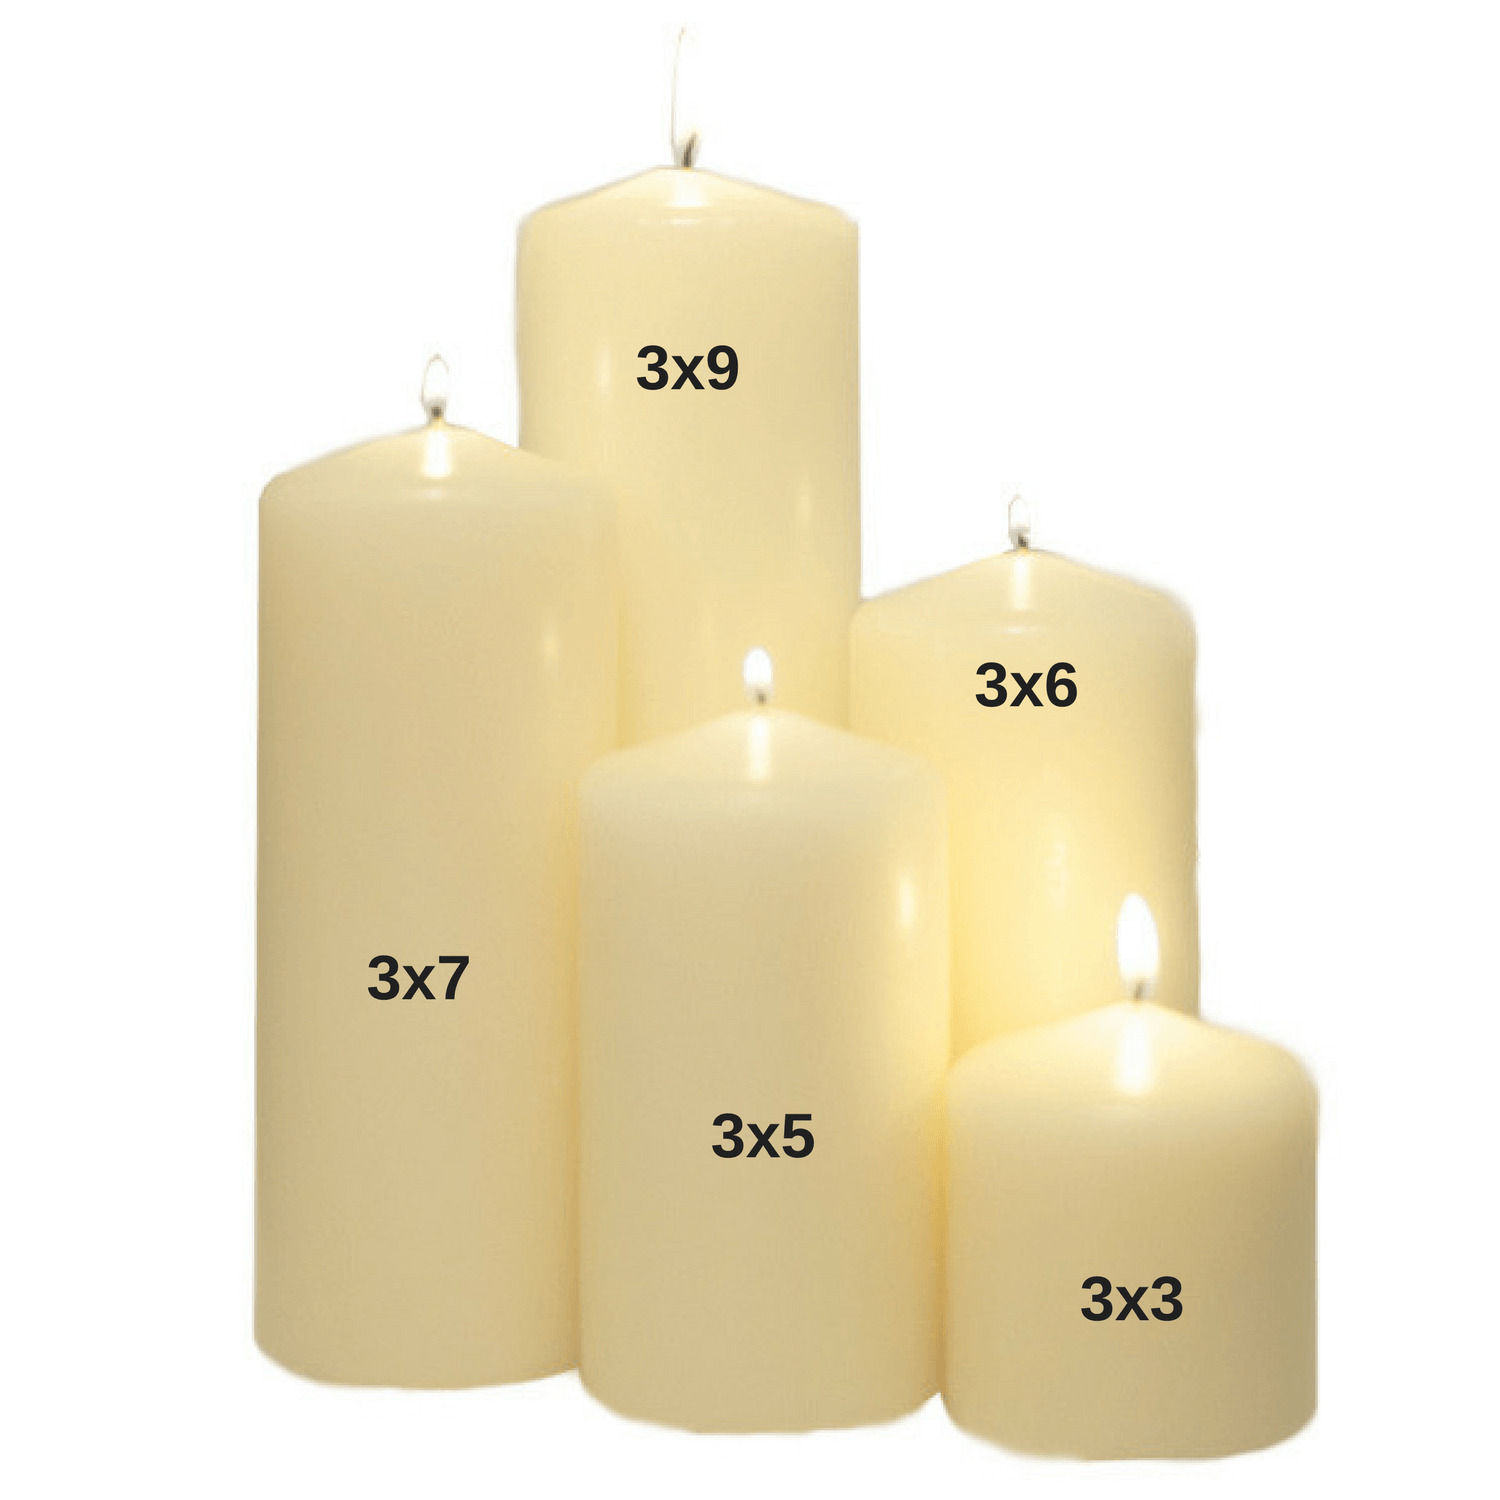 3x12 Unscented White Pillar Candle Candles Candlemart.com $ 4.99